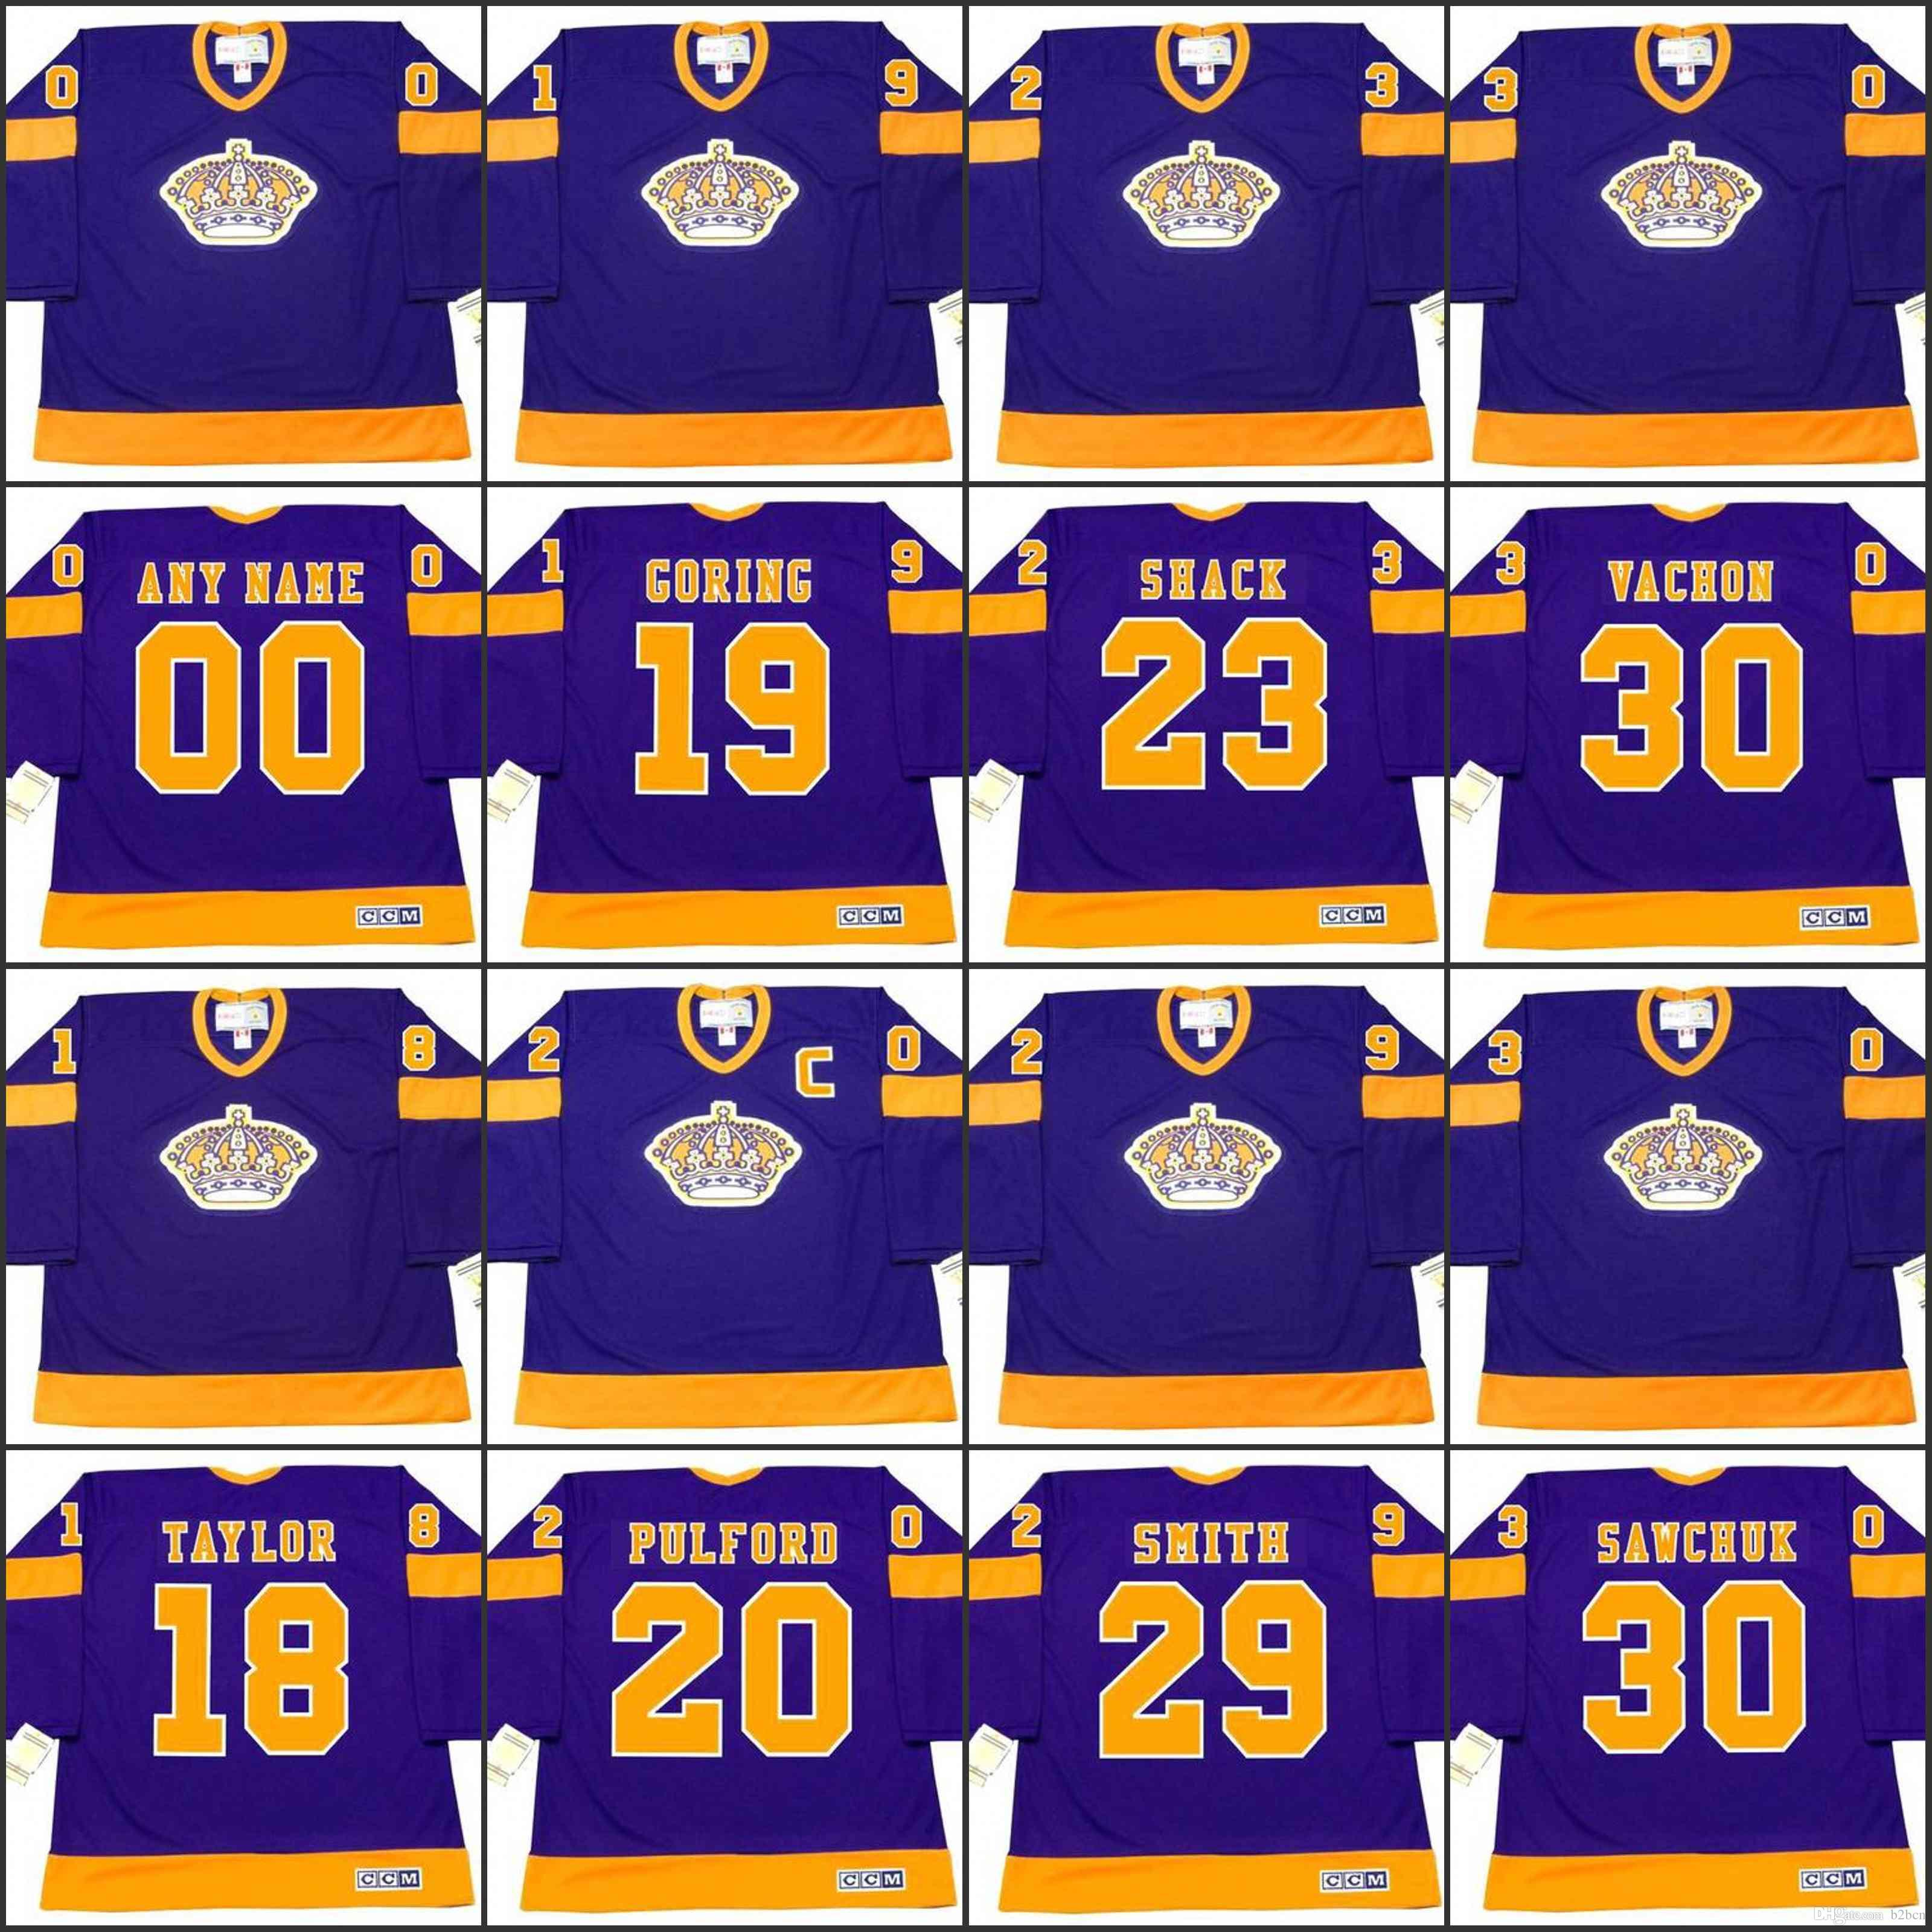 d062d271 2019 18 DAVE TAYLOR 19 BUTCH GORING 20 BOB PULFORD 23 EDDIE SHACK LOS  ANGELES KINGS 1967 CCM Away Jersey Customized Any Name & NumberS From  B2bcn, ...